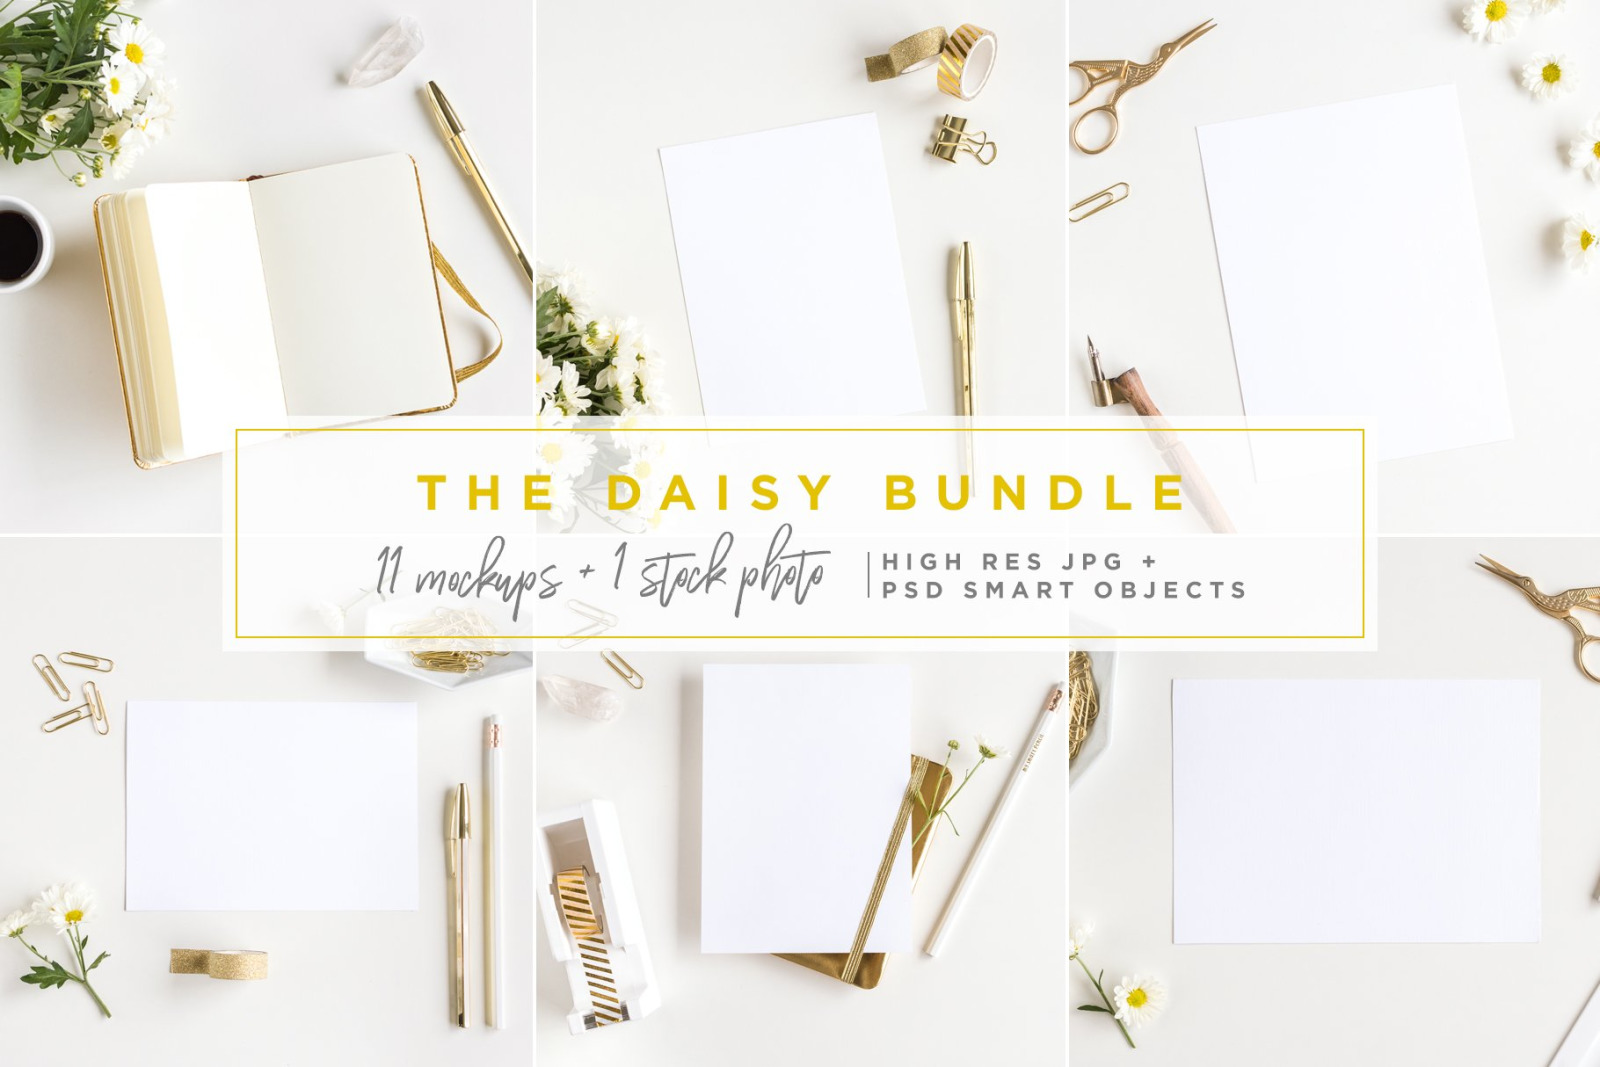 The Daisy Bundle - 11 Mockups and a Stock Photo